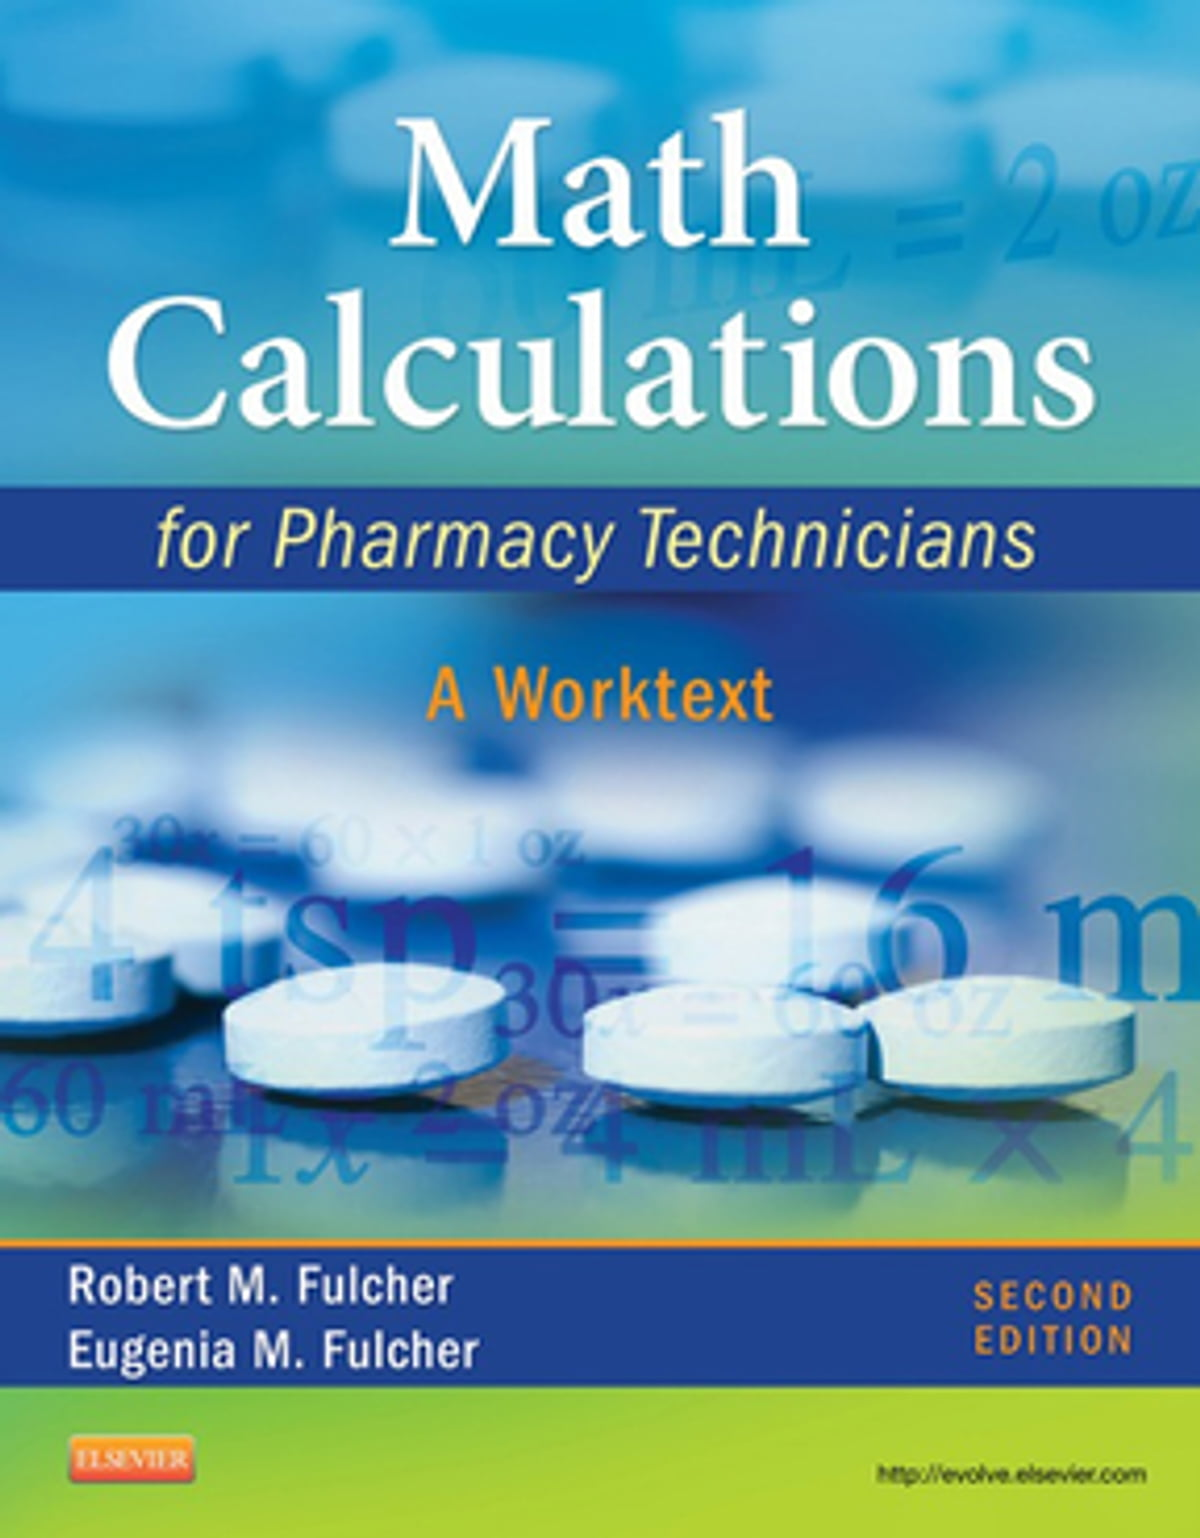 Math Calculations for Pharmacy Technicians - E-Book eBook by ...